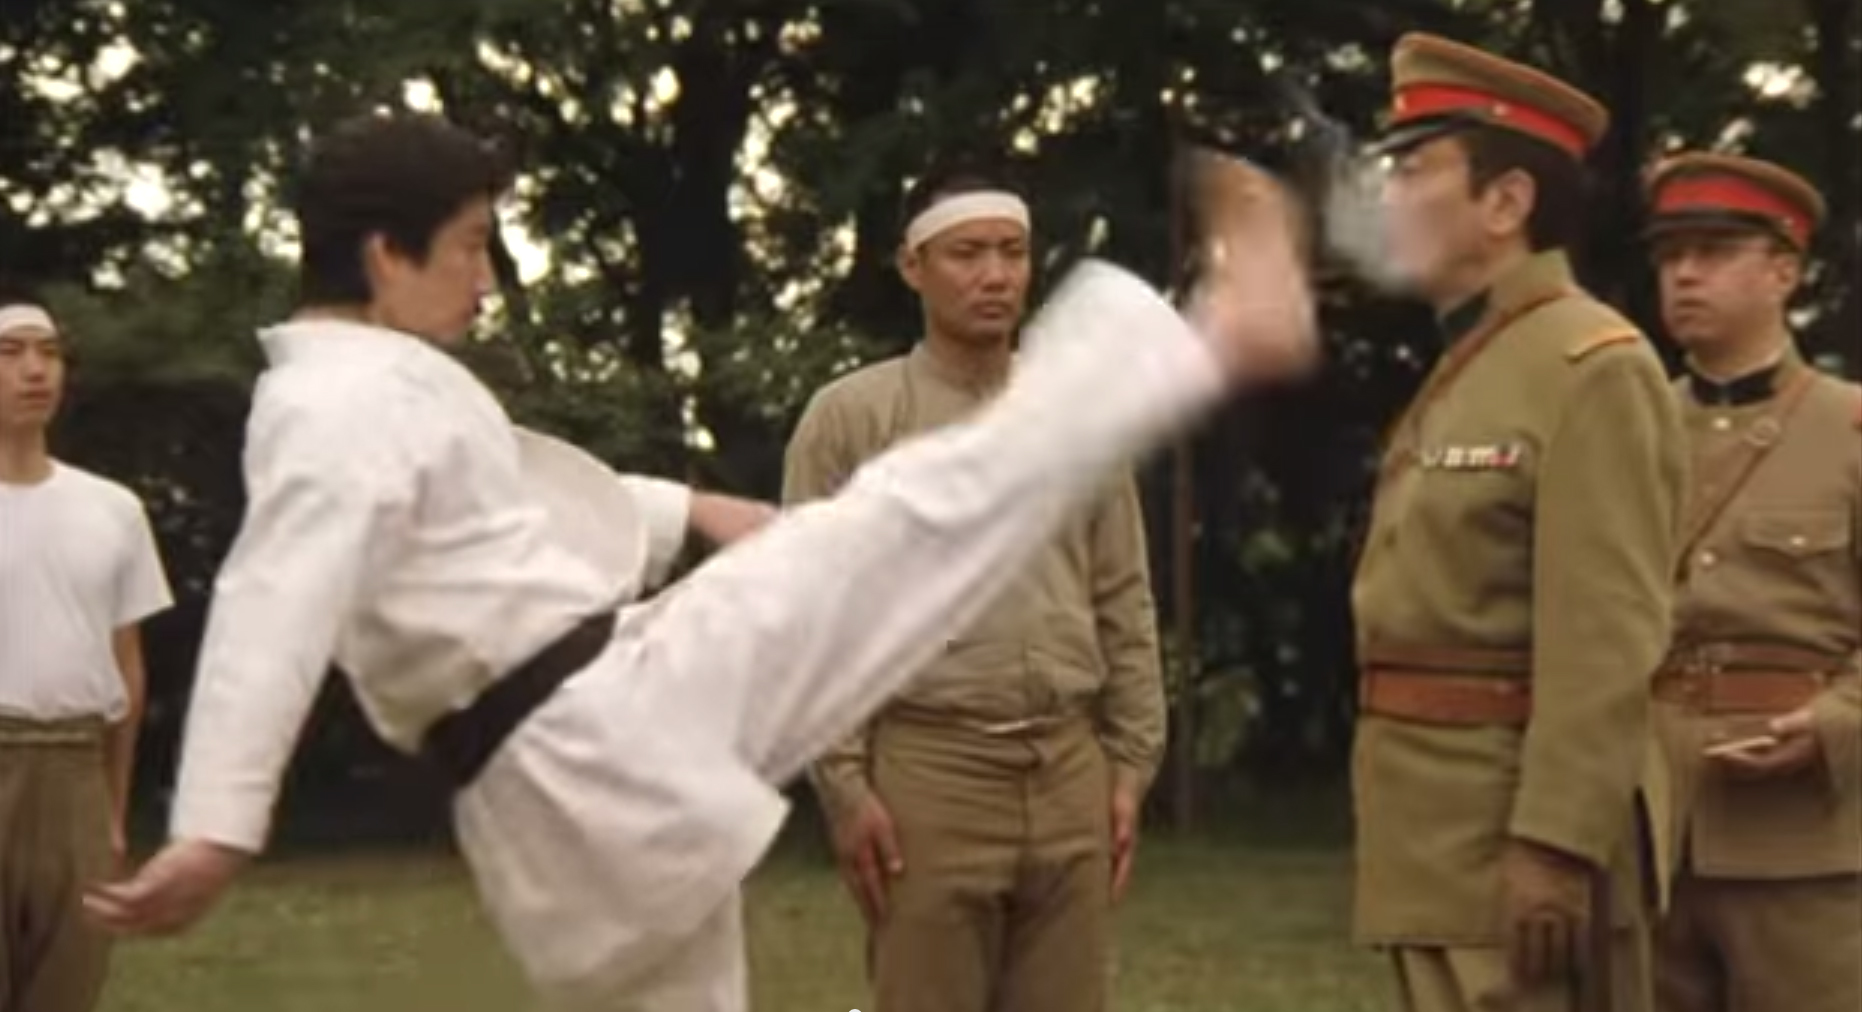 10 best martialarts movies of all time including kung fu